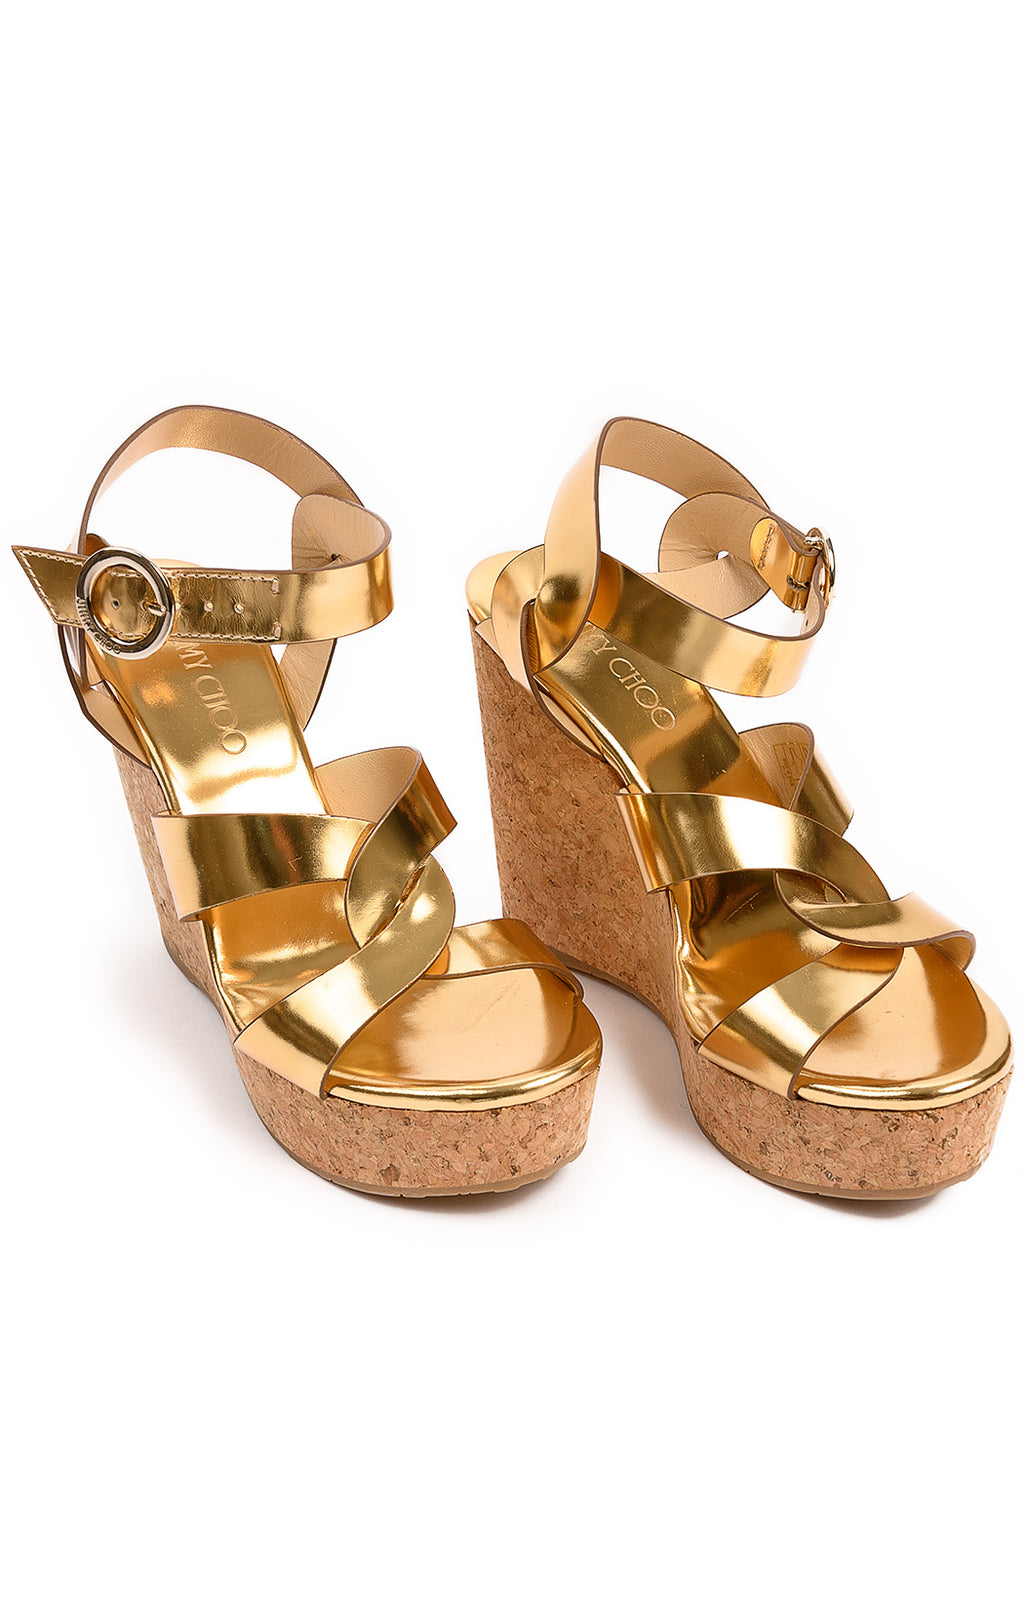 Front view of JIMMY CHOO Sandals  Size: 38.5 / 8.5